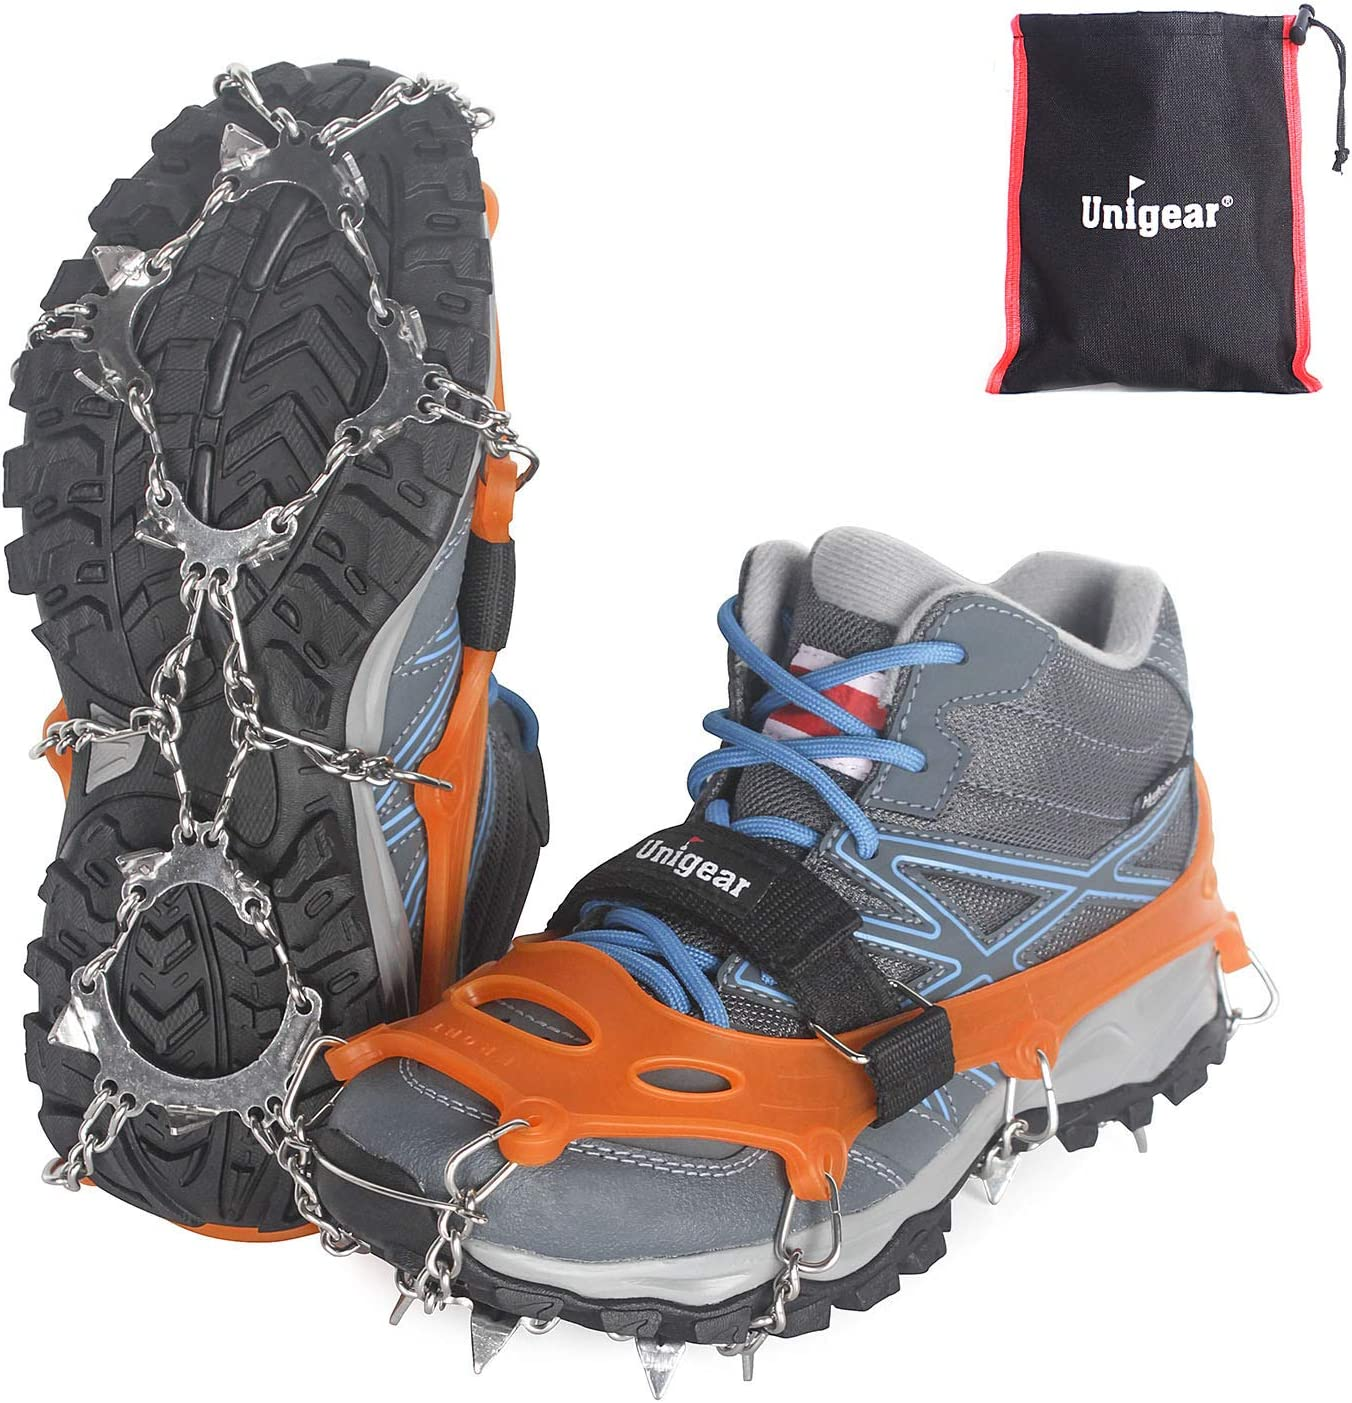 Unigear Ice Traction Cleats, Crampons Snow Cleats for Walking, Jogging, Climbing and Hiking, Youth or Kids